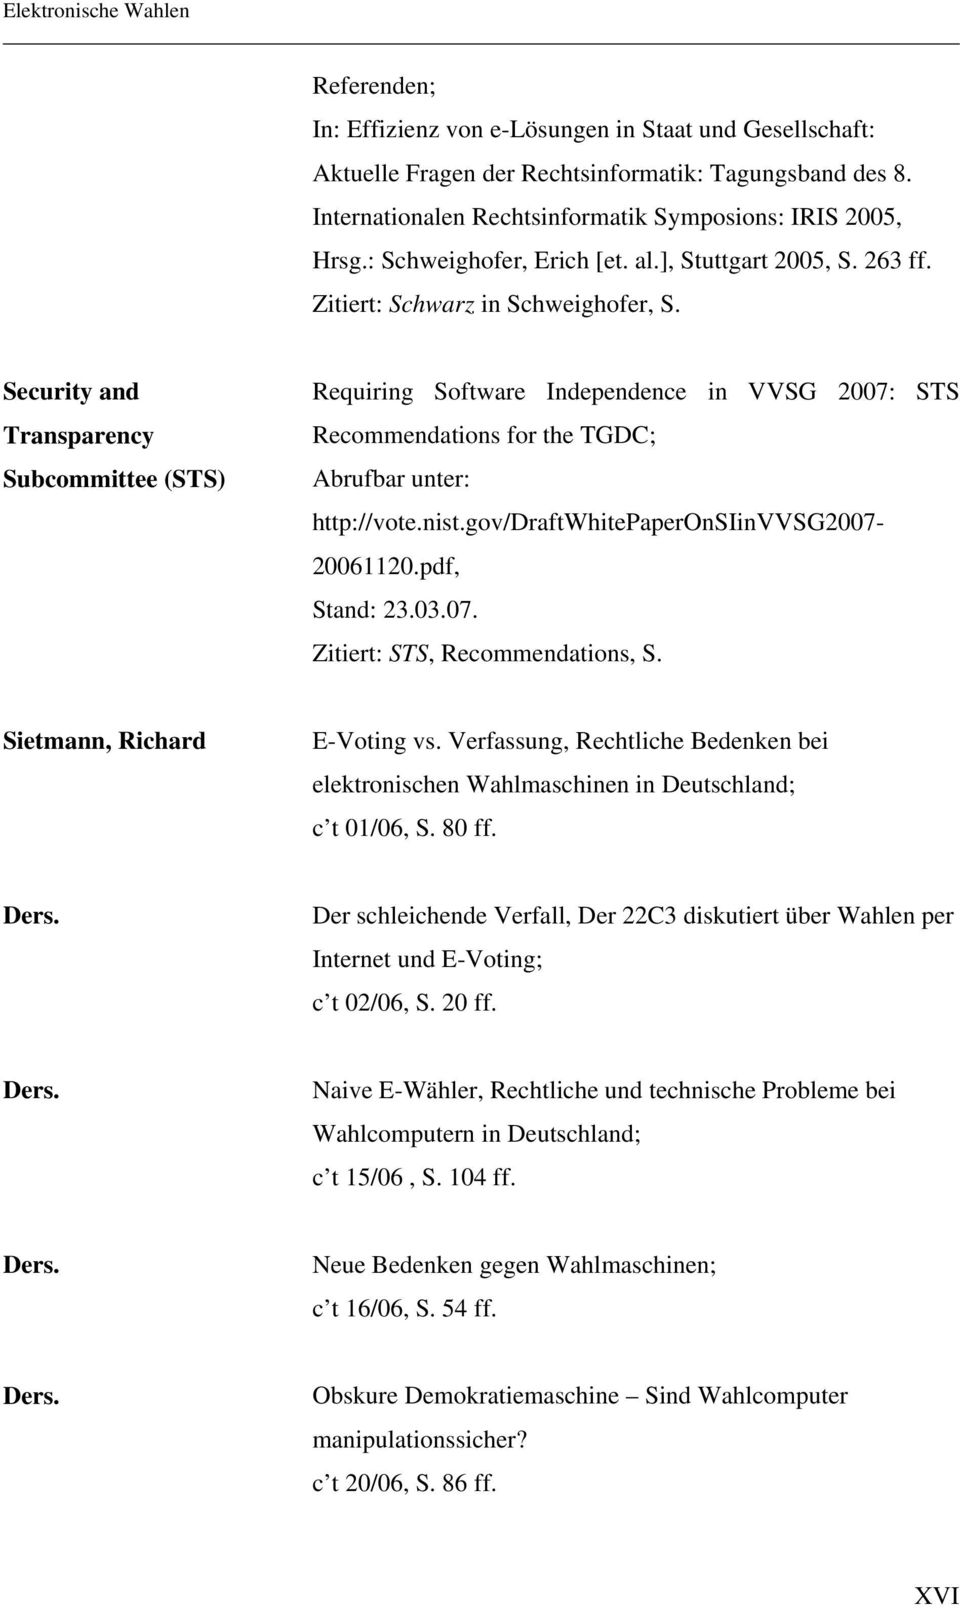 Security and Transparency Subcommittee (STS) Requiring Software Independence in VVSG 2007: STS Recommendations for the TGDC; Abrufbar unter: http://vote.nist.